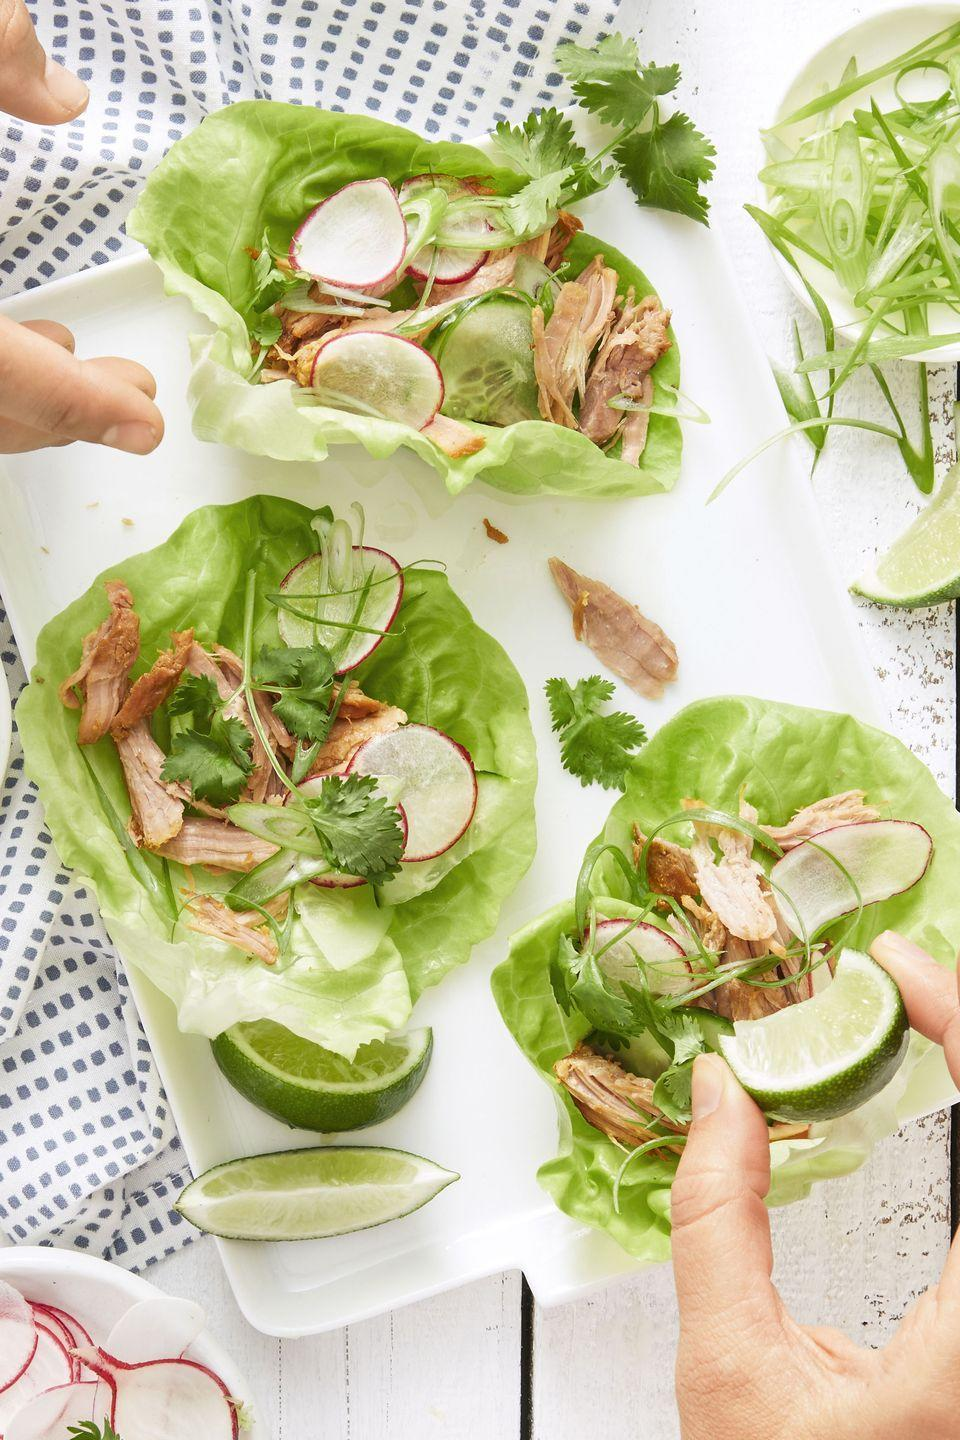 """<p>This <a href=""""https://www.goodhousekeeping.com/food-recipes/healthy/g1364/myplate-inspired-slow-cooker-dinners/"""" rel=""""nofollow noopener"""" target=""""_blank"""" data-ylk=""""slk:summery slow cooker recipe"""" class=""""link rapid-noclick-resp"""">summery slow cooker recipe</a> is a lifesaver. Throw in the pork, head to the beach, and come home to these crazy-delicious Asian-inspired wraps. </p><p><em><a href=""""https://www.goodhousekeeping.com/food-recipes/easy/a34182/korean-pork-lettuce-wraps/"""" rel=""""nofollow noopener"""" target=""""_blank"""" data-ylk=""""slk:Get the recipe for Korean Pork Lettuce Wraps »"""" class=""""link rapid-noclick-resp"""">Get the recipe for Korean Pork Lettuce Wraps »</a></em> </p>"""